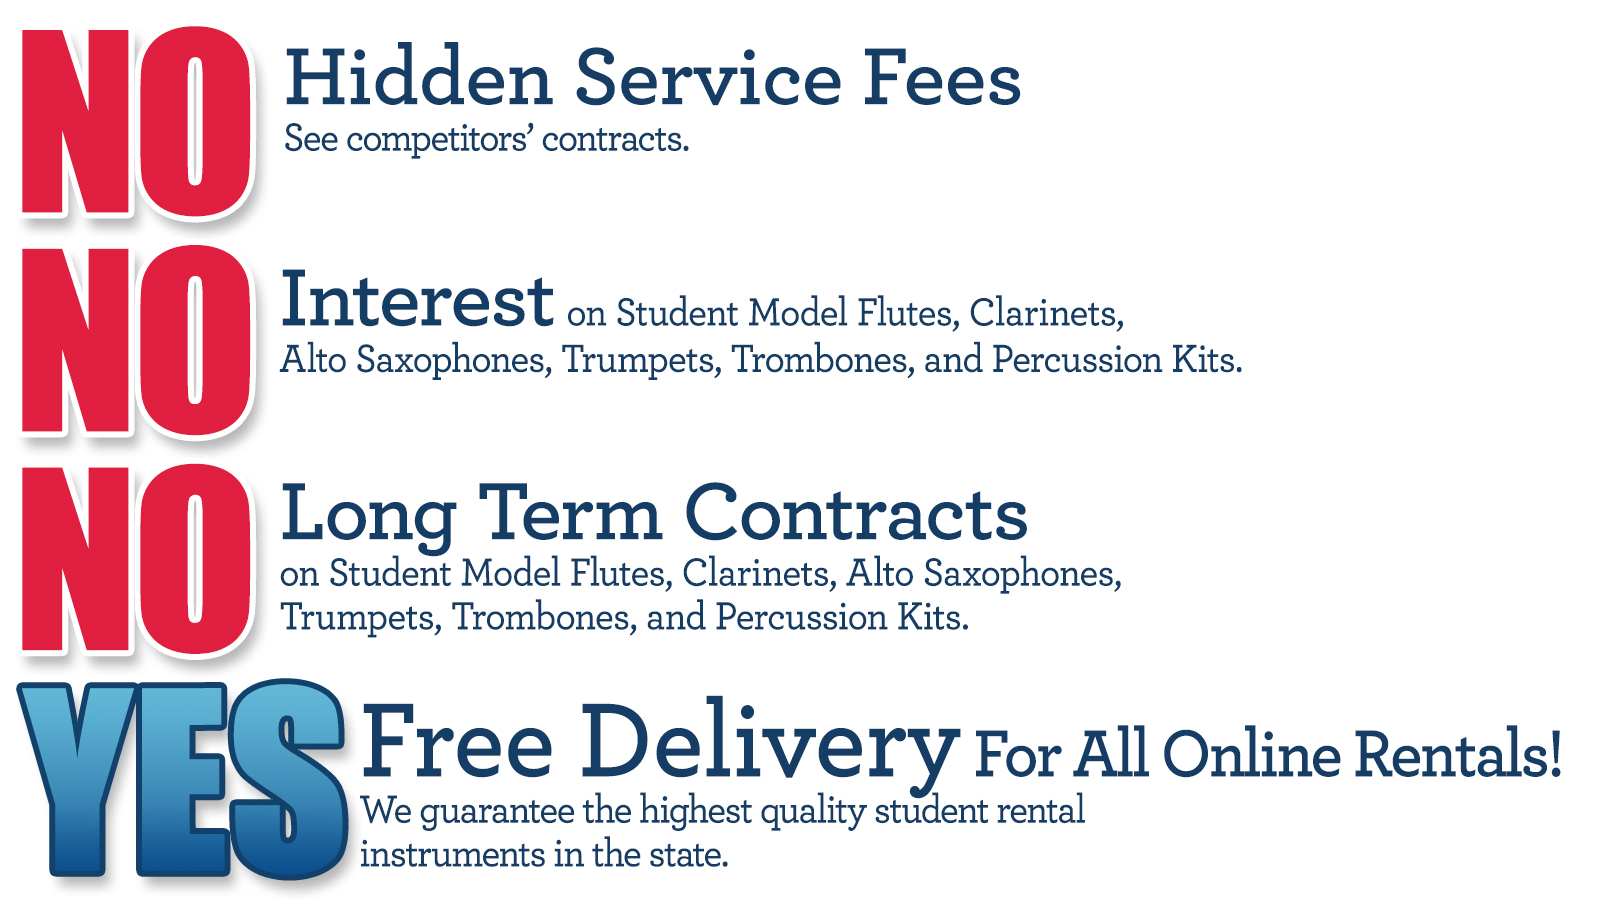 """No Hidden Service Fees. See competitors' contracts. No interest, no long term contracts on student model flutes, clarinets, alto saxophones, trumpets, trombones, and percussion kits. Yes on free delivery for all online rentals. We guarantee the highest quality student rental instruments in the state."""